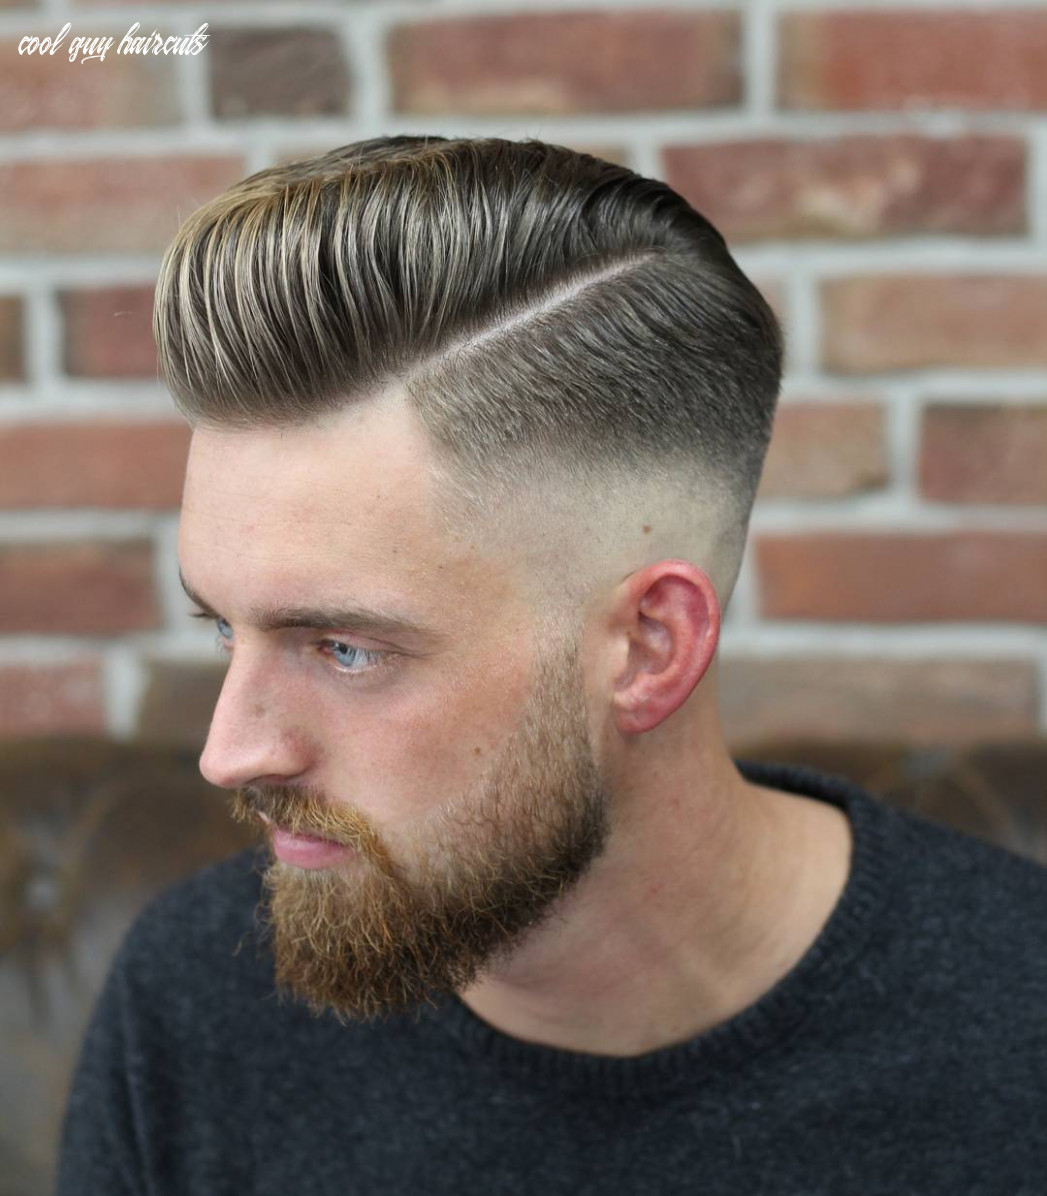 12 cool hairstyles for men (fresh styles) cool guy haircuts